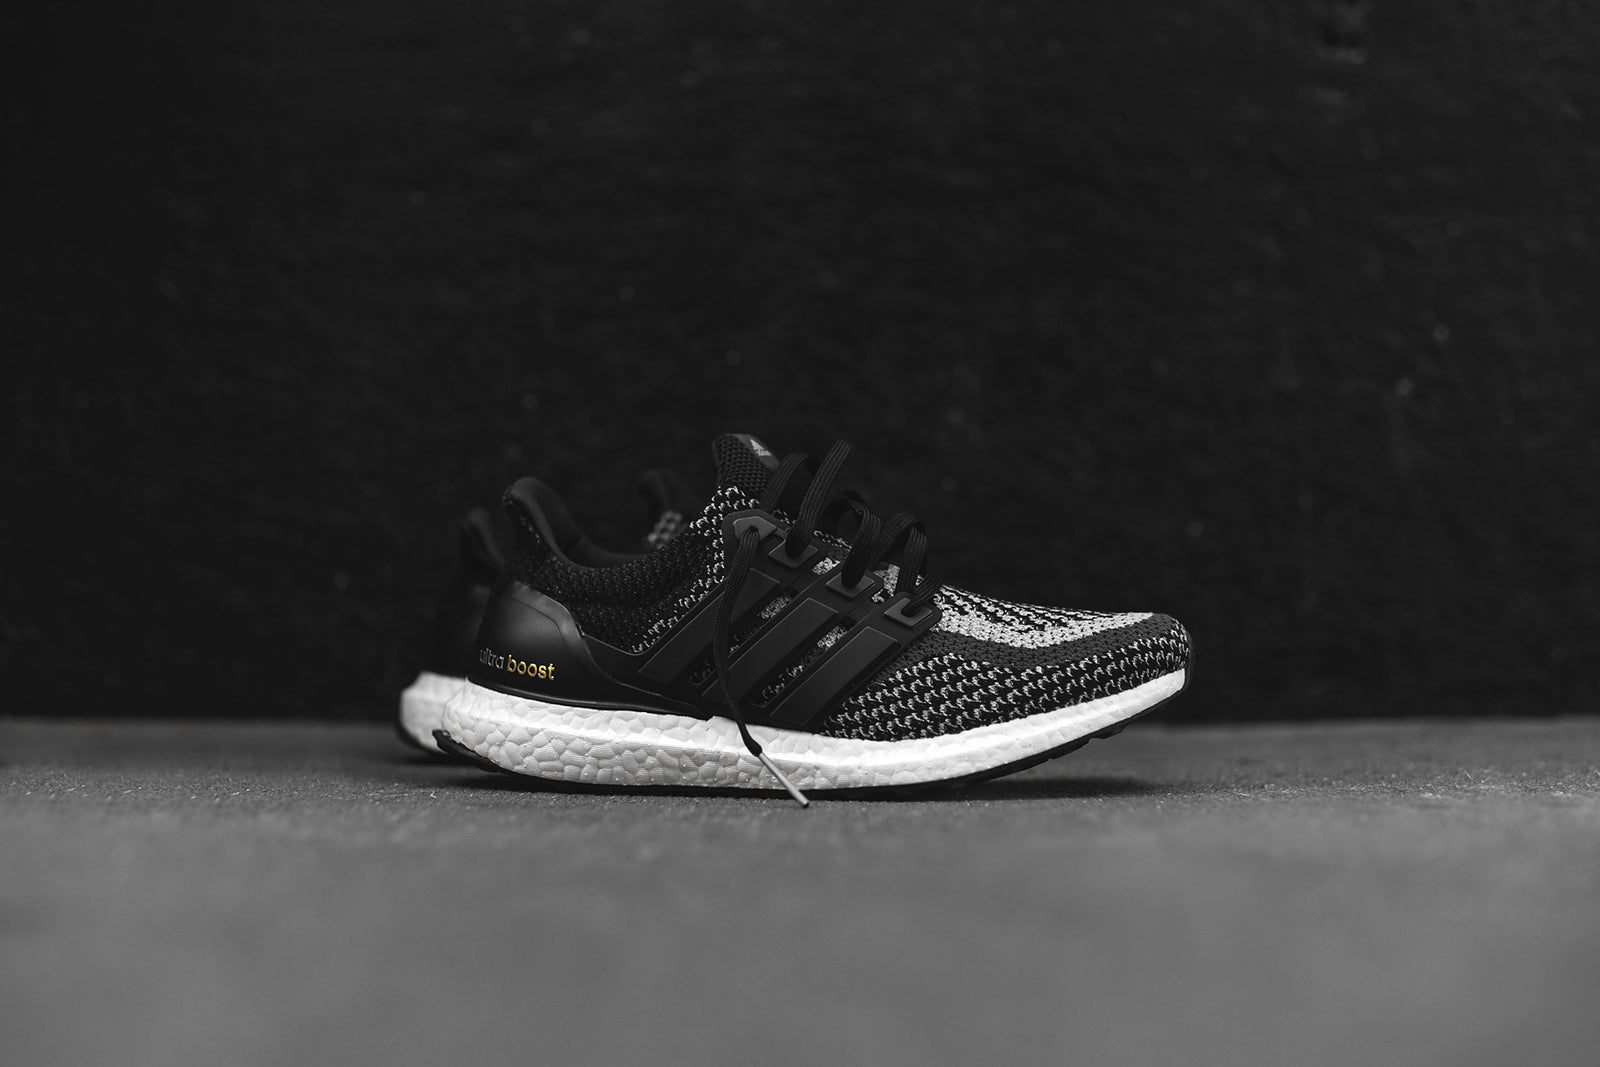 526ae46eeec15 adidas Ultra Boost - Black   Reflective. November 10